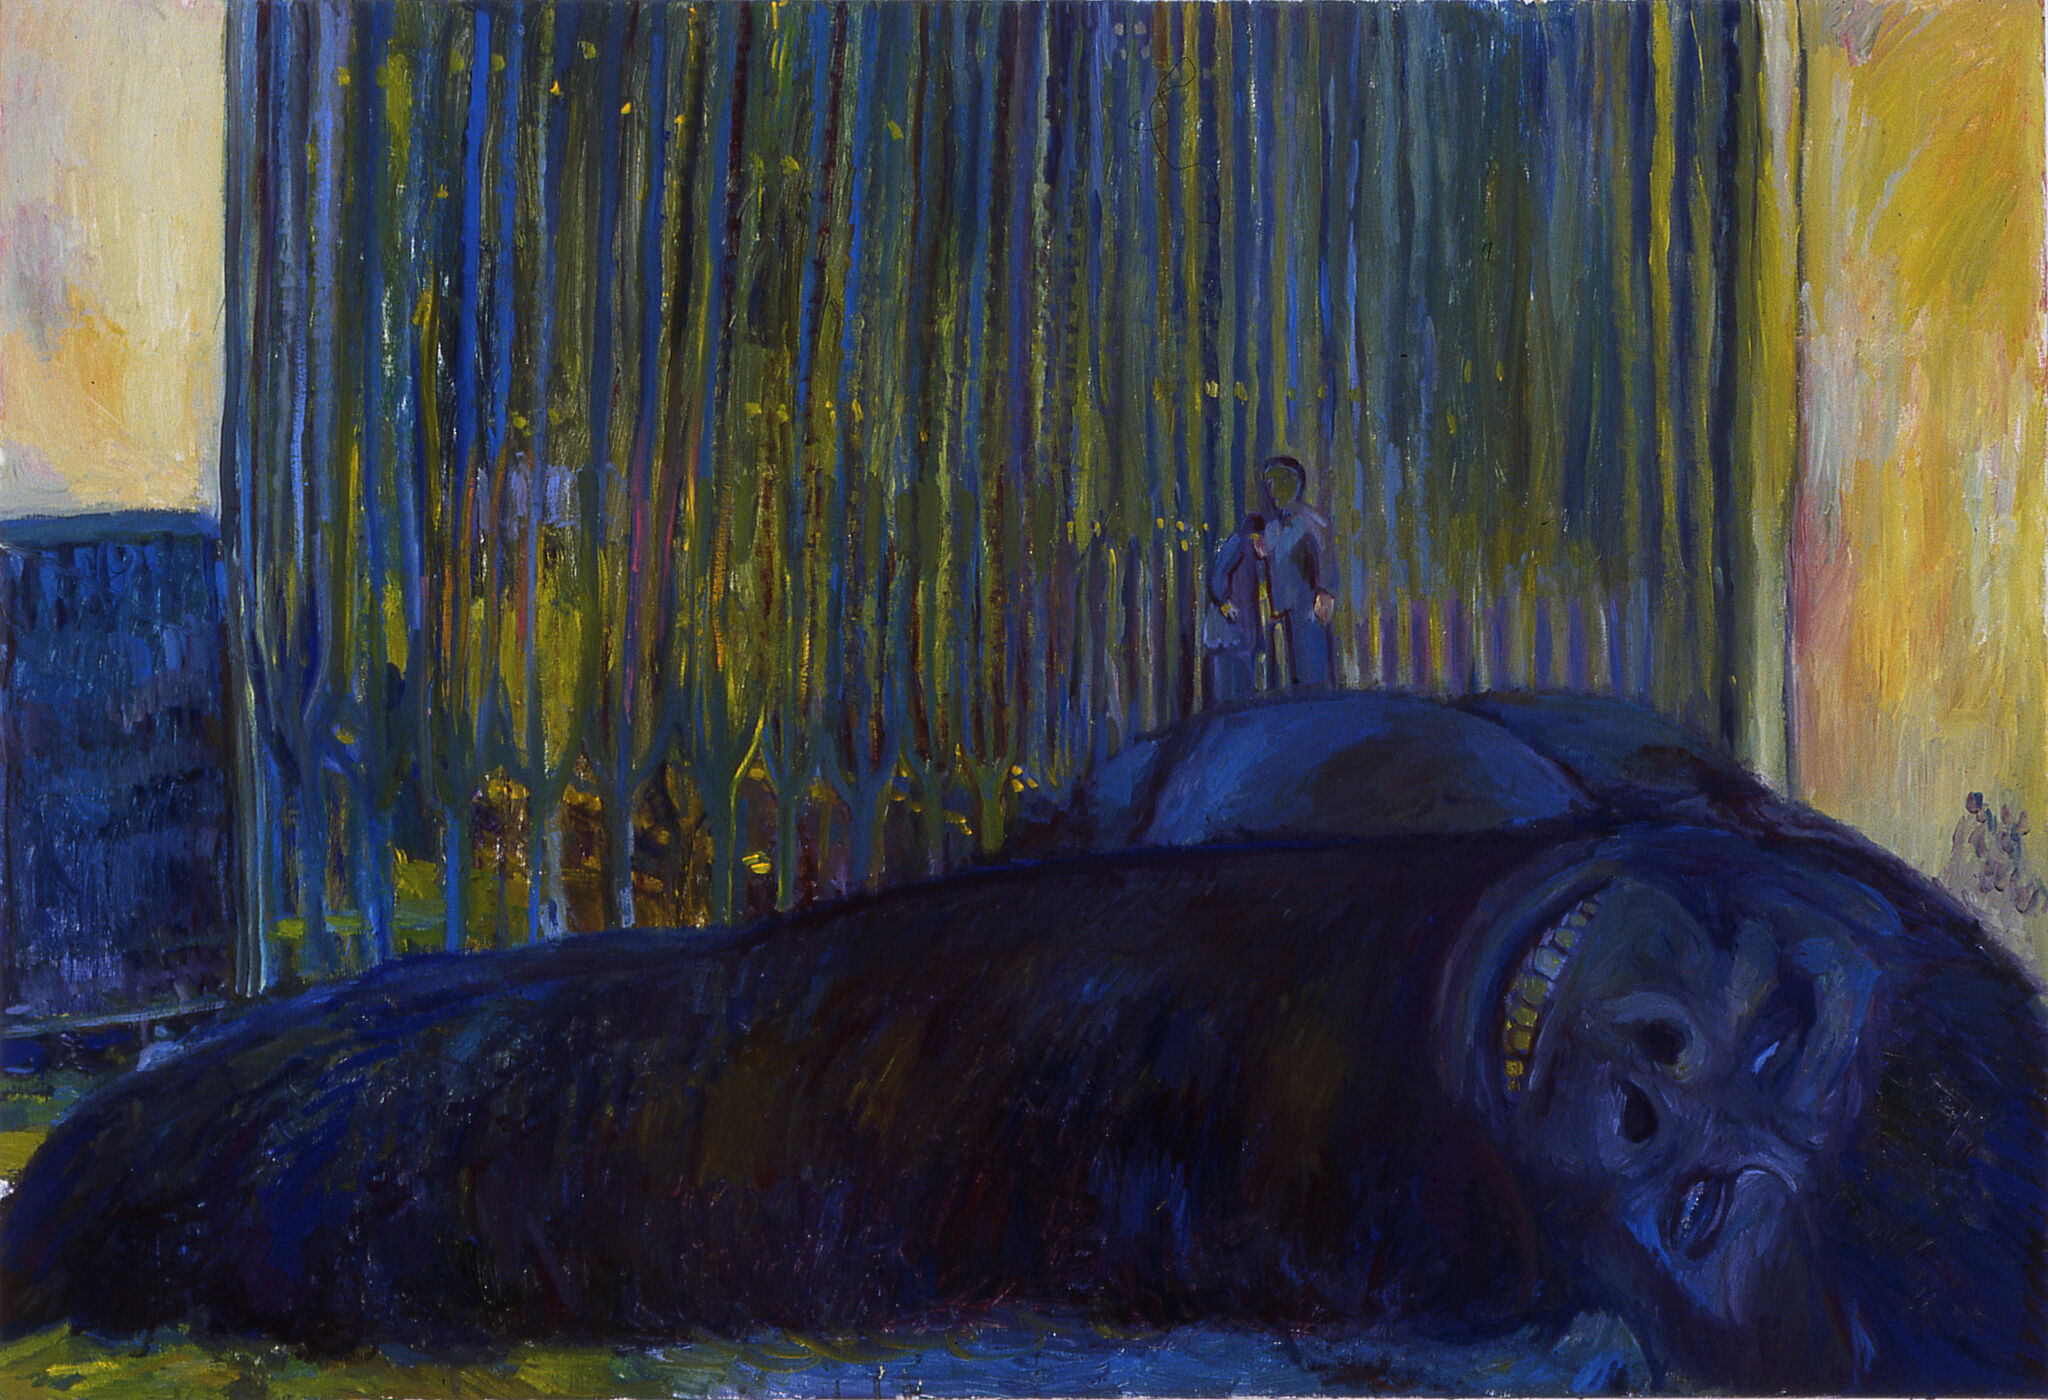 A painting of King Kong lying on the ground.